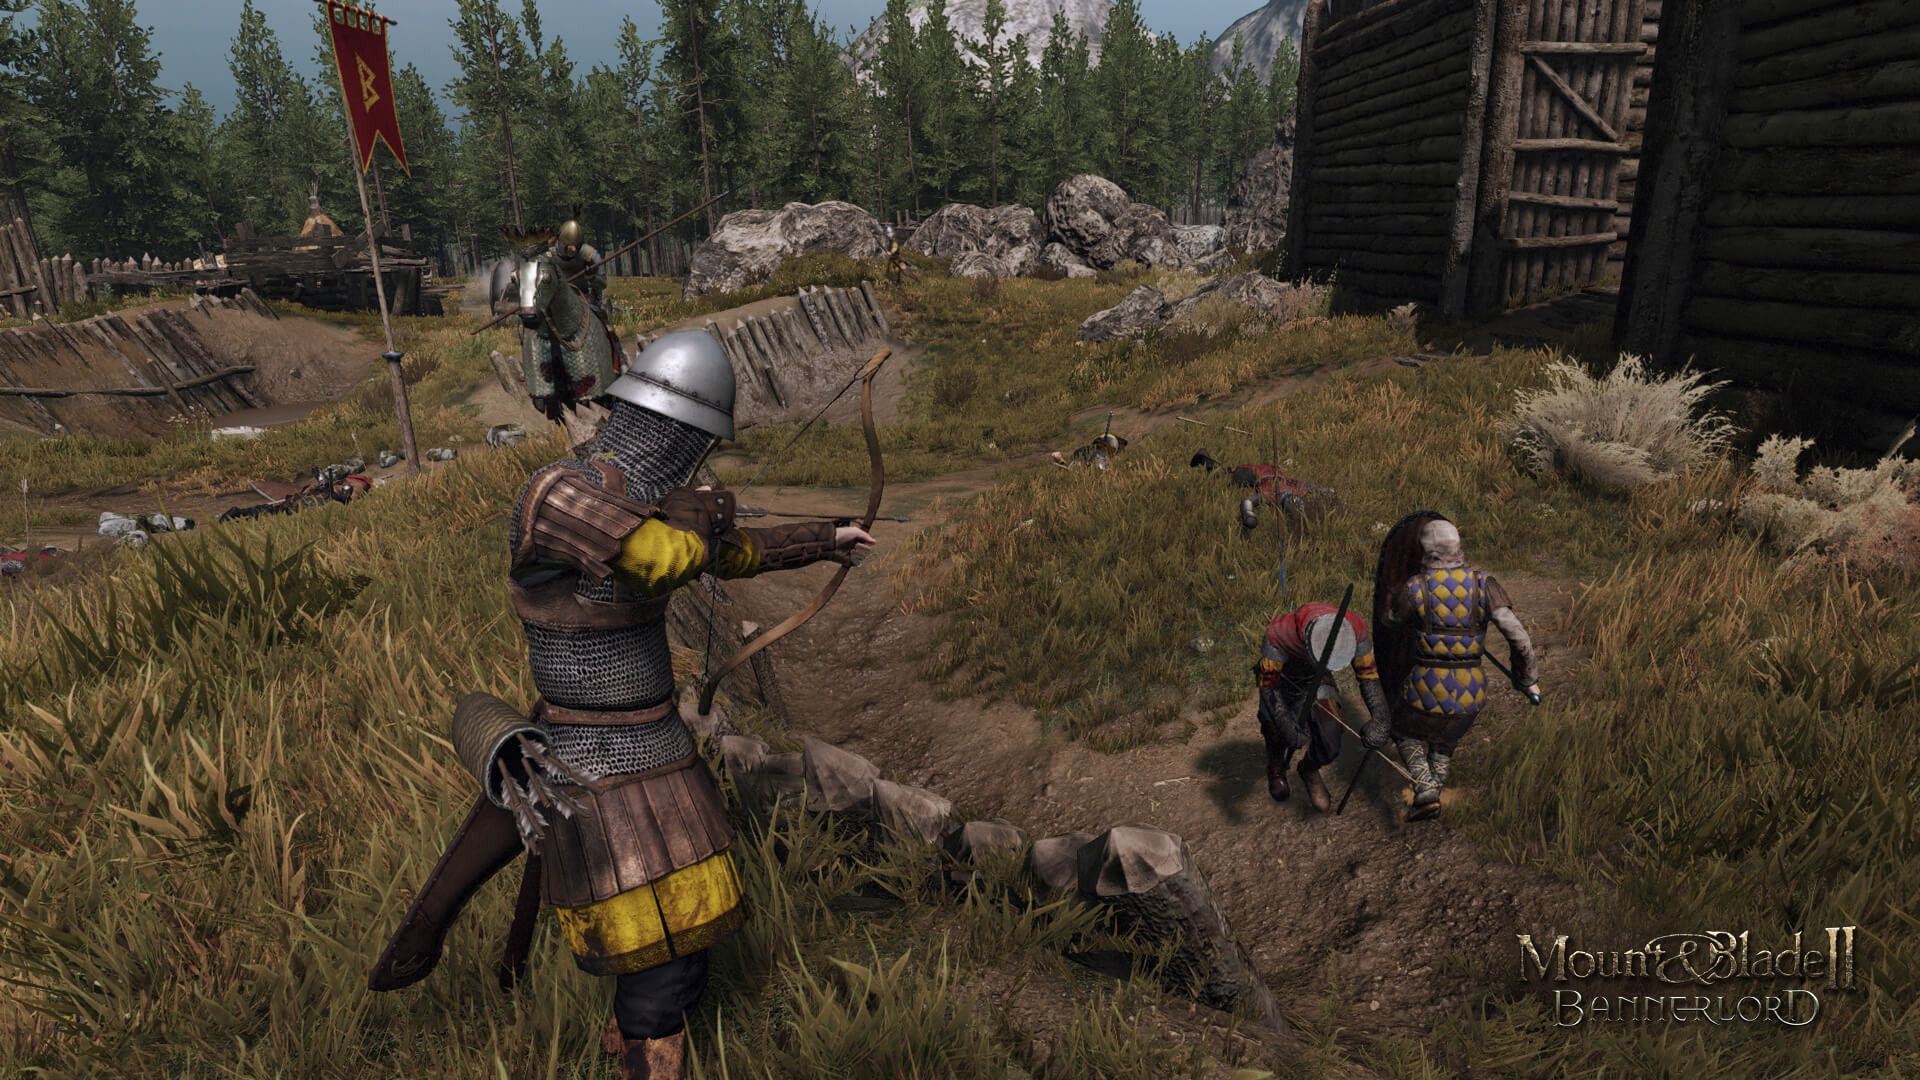 Mount and Blade: Bannerlord 2 would be more epic if it came with a battle royale mode